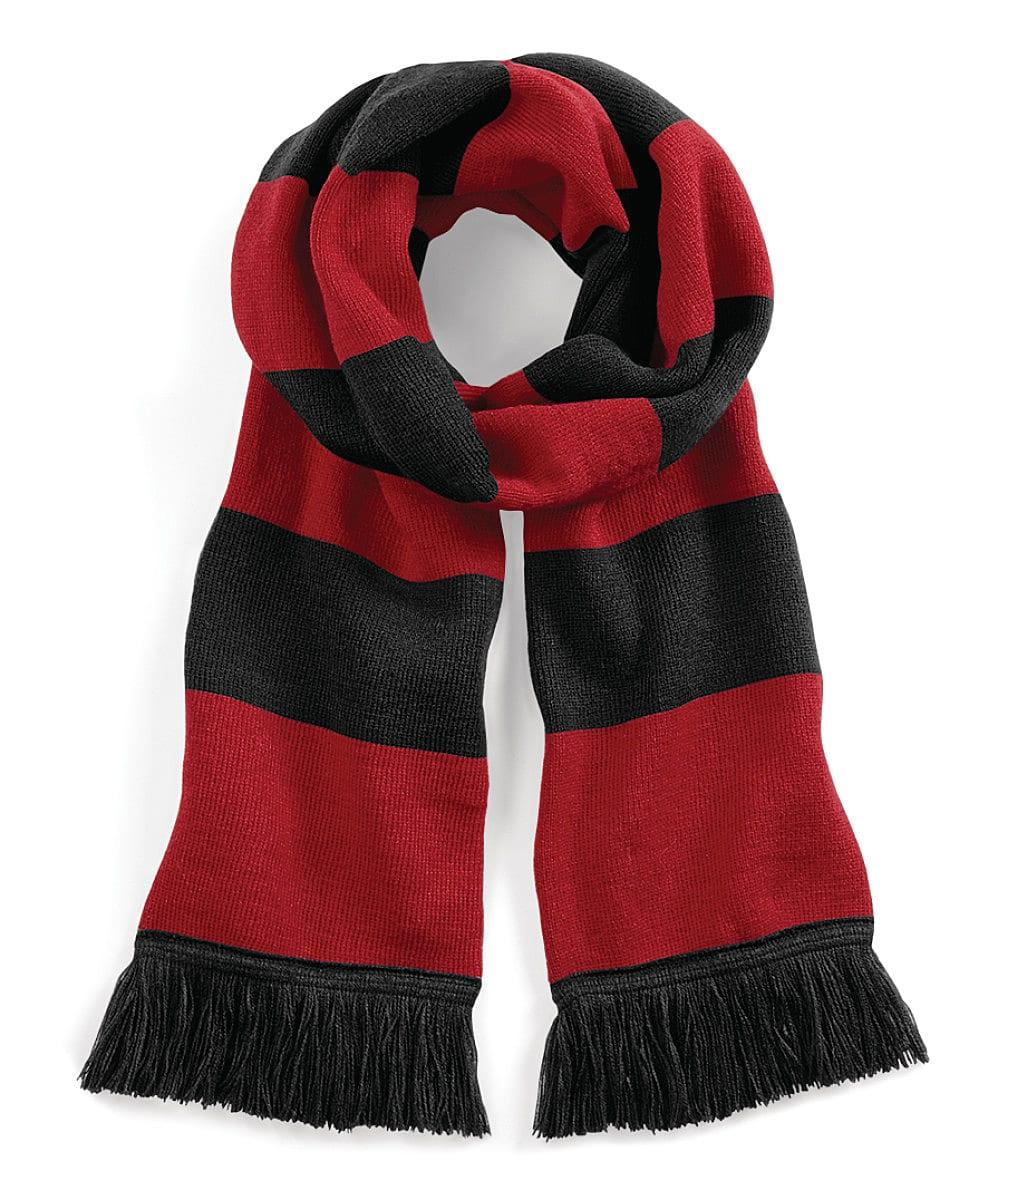 Beechfield Varsity Scarf in Black / Classic Red (Product Code: B479)